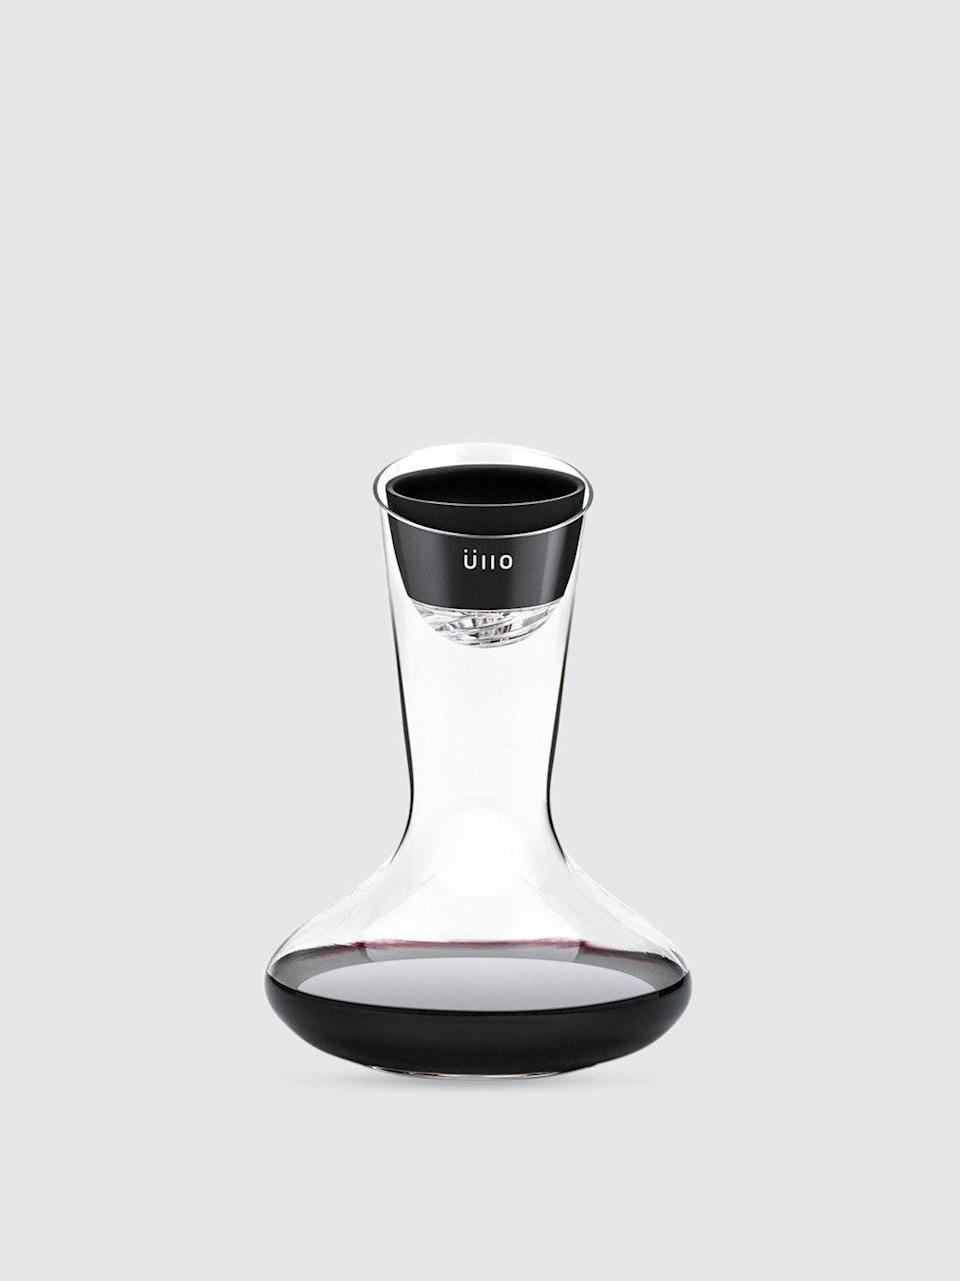 """<h2>Üllo Wine Purifier & Decanter</h2><br>If she's real fancy-schmancy (and doesn't already own such a premium device), really wow her with Üllo's hand-blown glass decanter that pours a purified glass of sulfate-free, aroma-rich, and opened up wine — like she's dining at a 5-star restaurant, with 5-star sommelier bottle service. <br><br><em>Shop <strong><a href=""""https://www.verishop.com/brand/ullo"""" rel=""""nofollow noopener"""" target=""""_blank"""" data-ylk=""""slk:Üllo"""" class=""""link rapid-noclick-resp"""">Üllo</a></strong></em><br><br><strong>Üllo</strong> Üllo Wine Purifier + Decanter, $, available at <a href=""""https://go.skimresources.com/?id=30283X879131&url=https%3A%2F%2Fwww.verishop.com%2Fullo%2Fmarketplace%2Fullo-wine-purifier-decanter%2Fp6251881693378%3Fvariant_id%3D38286853013698"""" rel=""""nofollow noopener"""" target=""""_blank"""" data-ylk=""""slk:Verishop"""" class=""""link rapid-noclick-resp"""">Verishop</a>"""